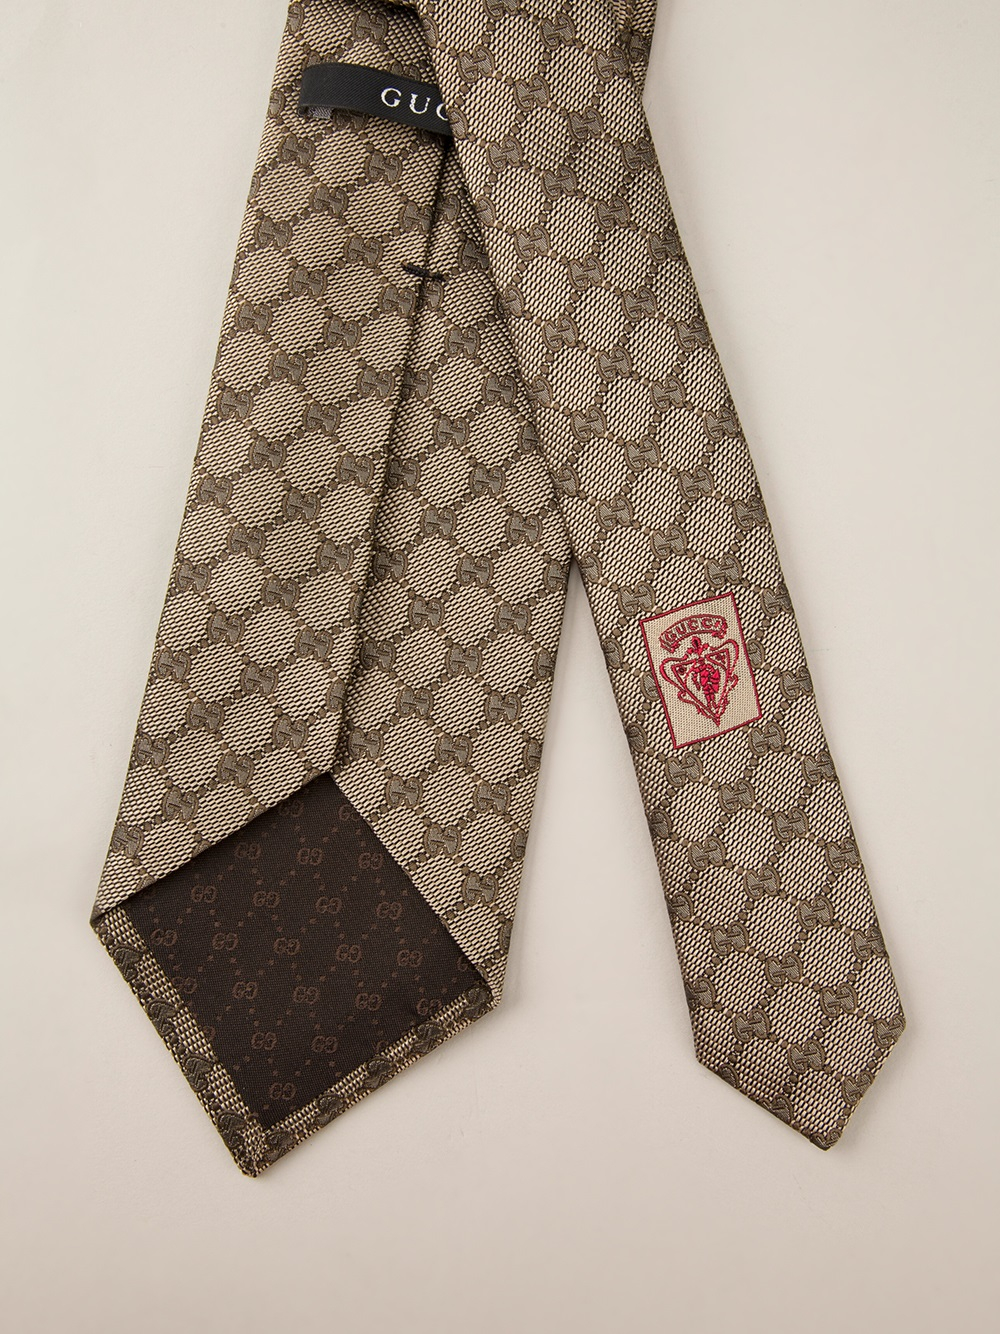 Lyst Gucci Monogram Print Tie In Brown For Men